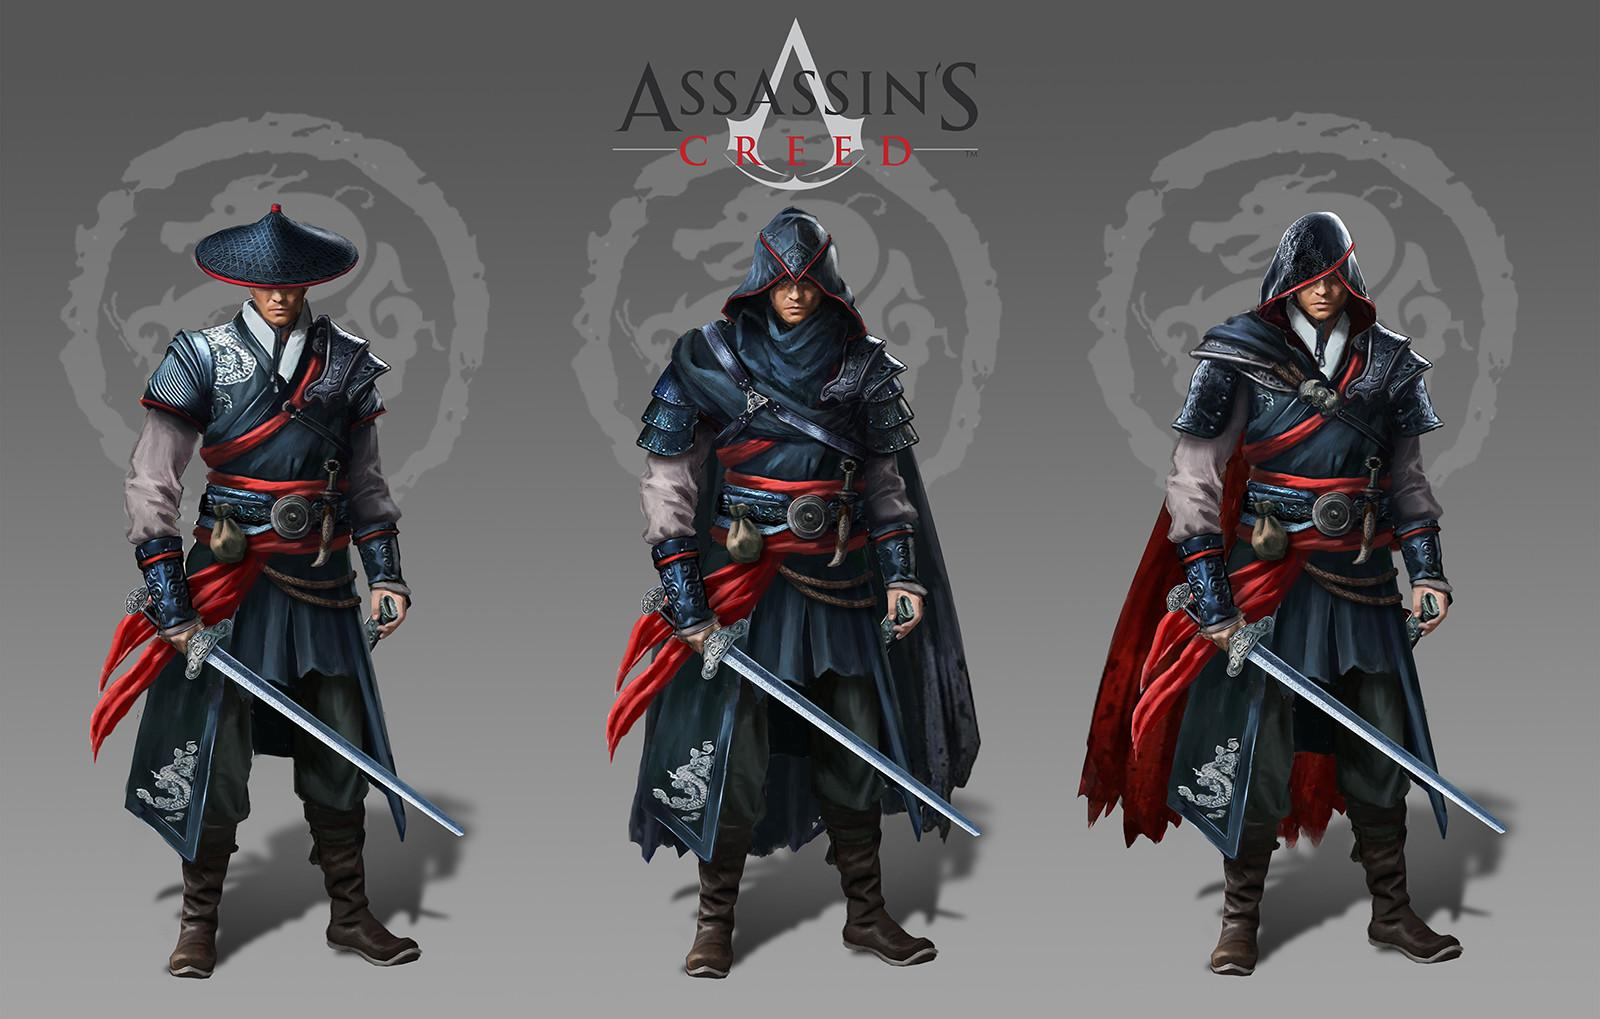 Assassin's Creed China 2022: Exclusive To Next-Gen Consoles